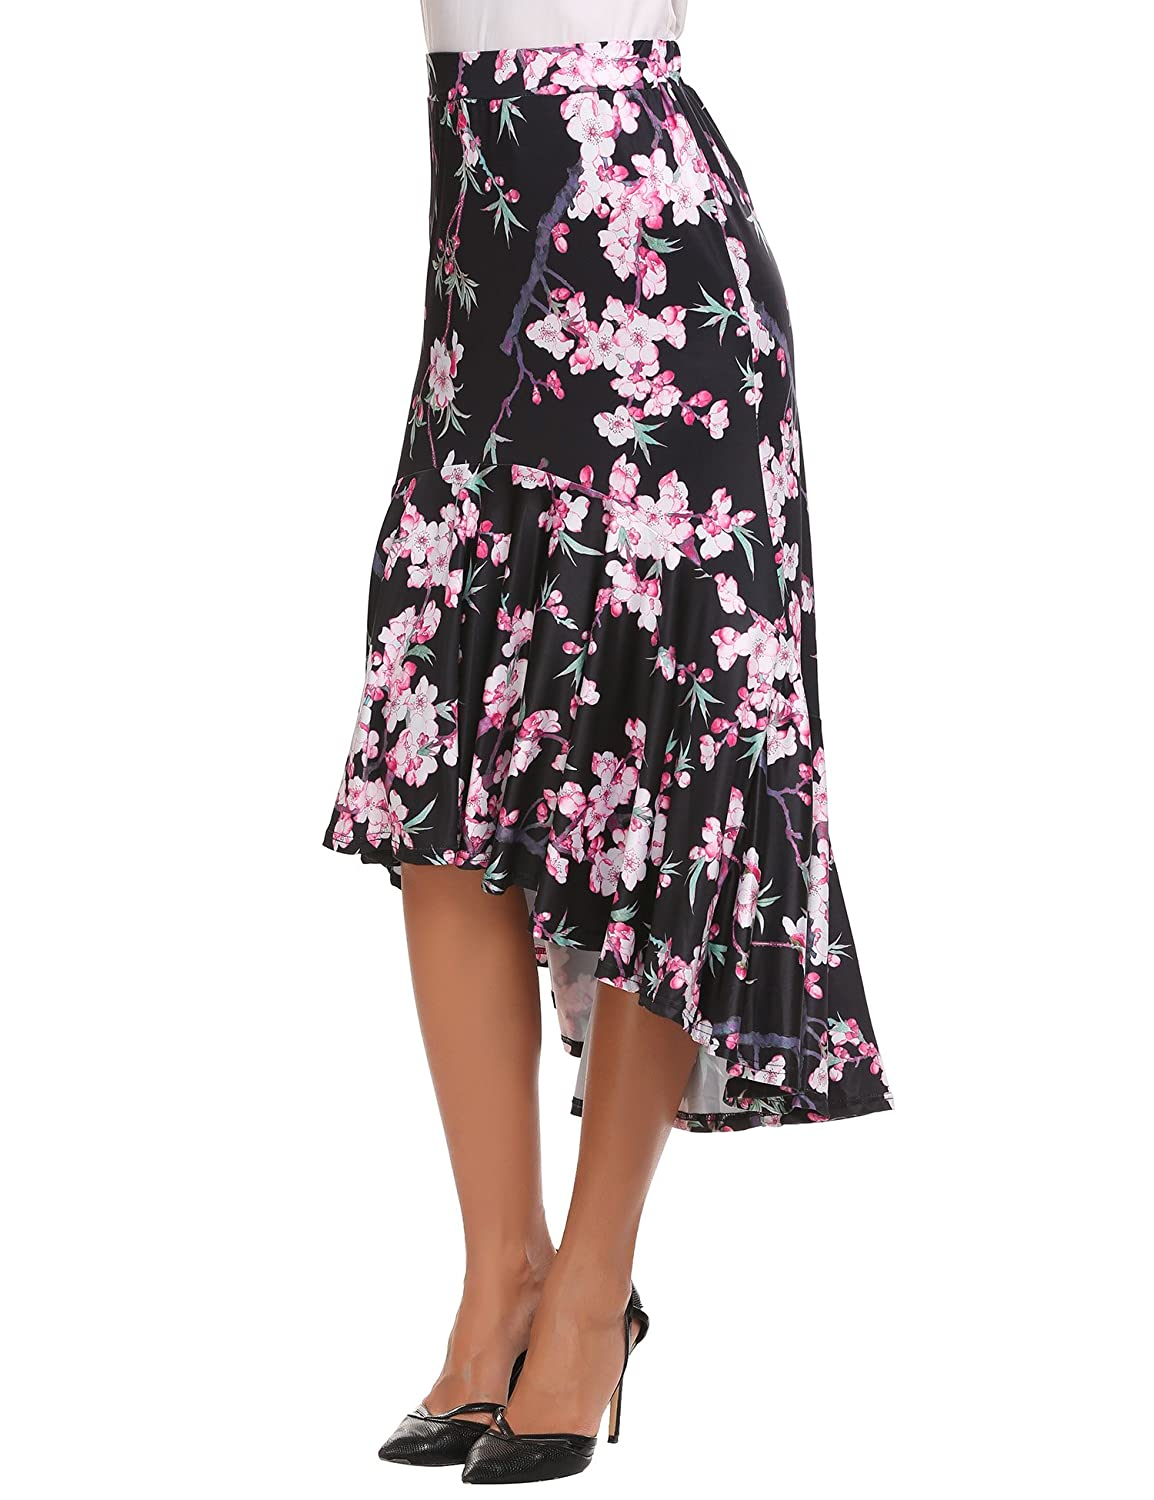 b81f538dbf Zeagoo Floral High Low Skirts Elestic High Waist Flowy Women Skirt Blow Knee